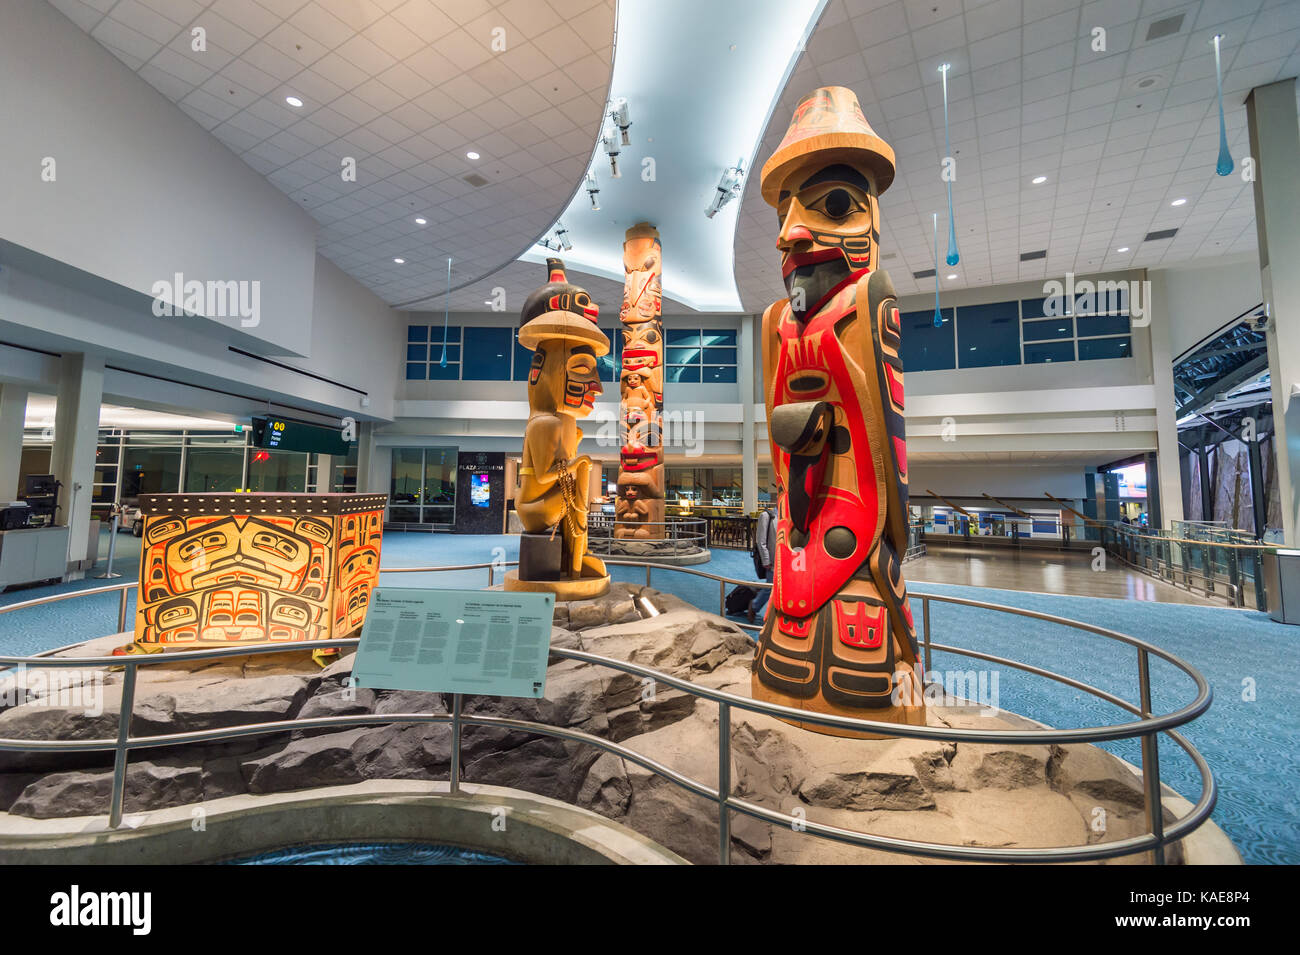 Reg Davidson sculpture 'the Raven, trickster of Haida legends' in the domestic terminal at Vancouver International - Stock Image